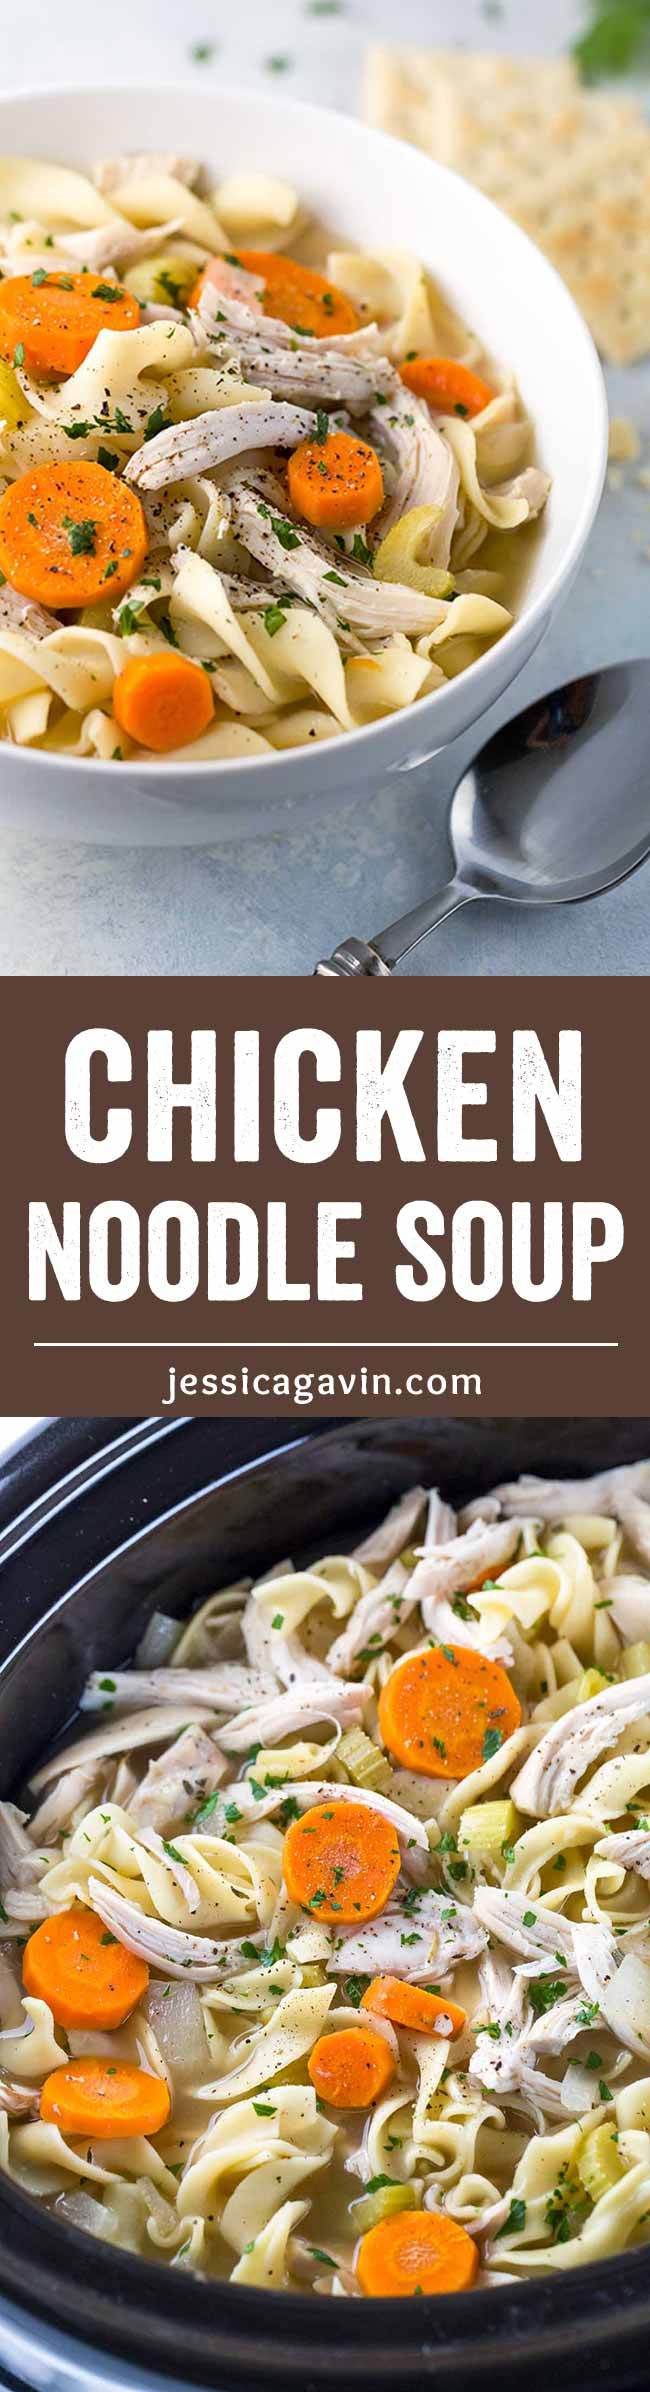 crockpot chicken noodle soup  recipe with images